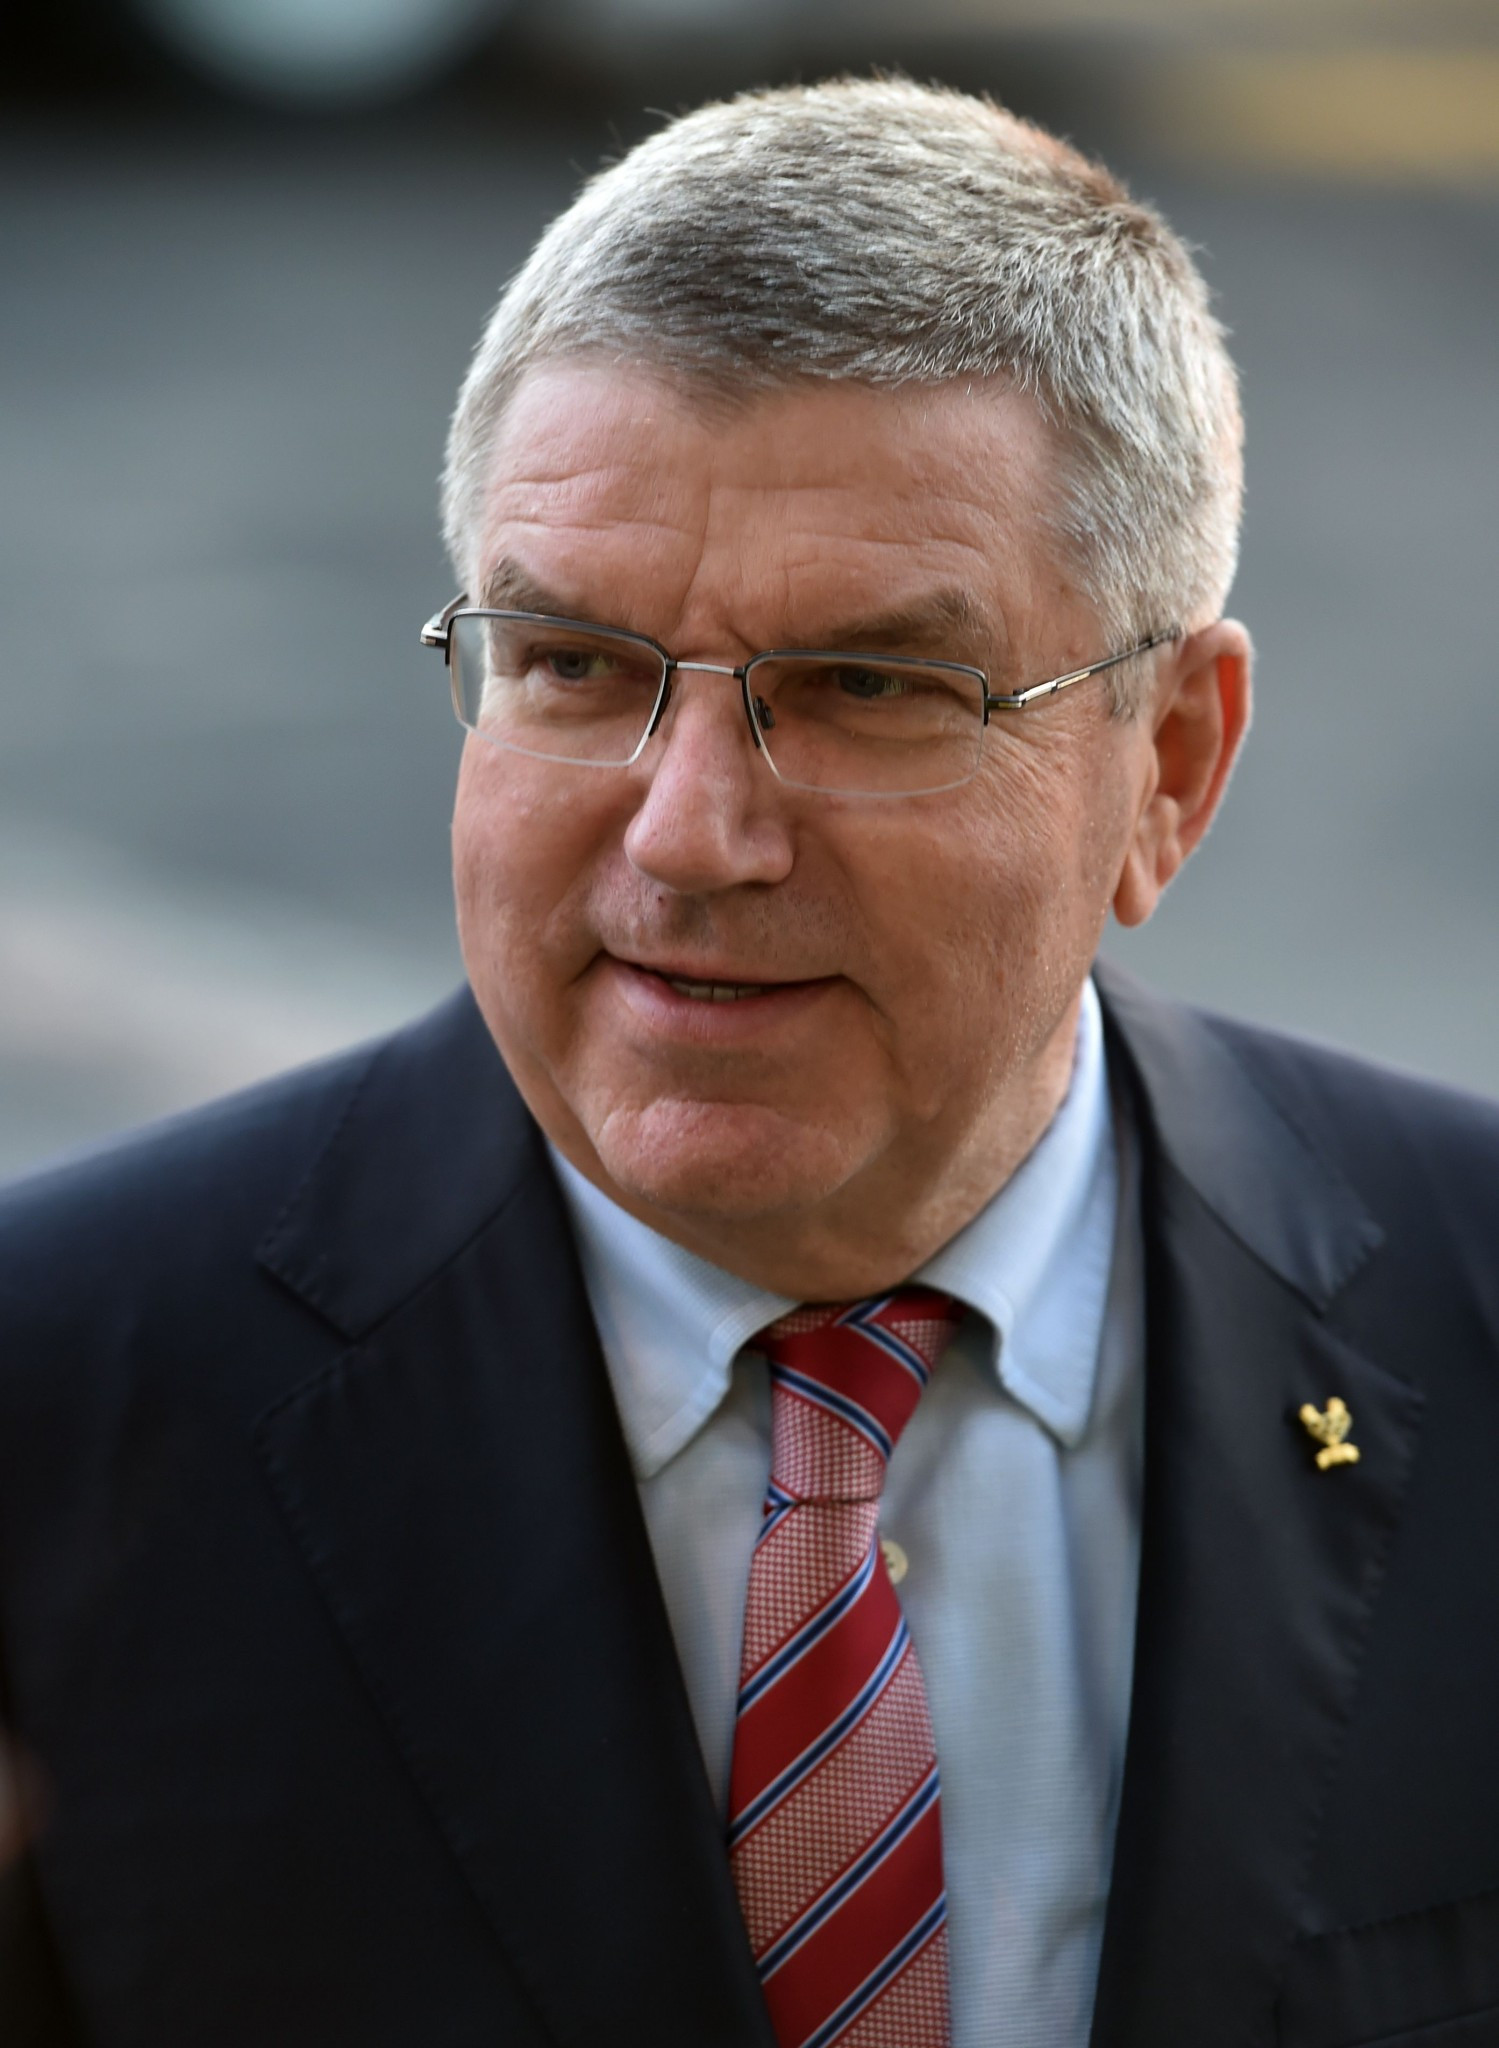 Thomas Bach served as an EB member before becoming President of the IOC ©Getty Images